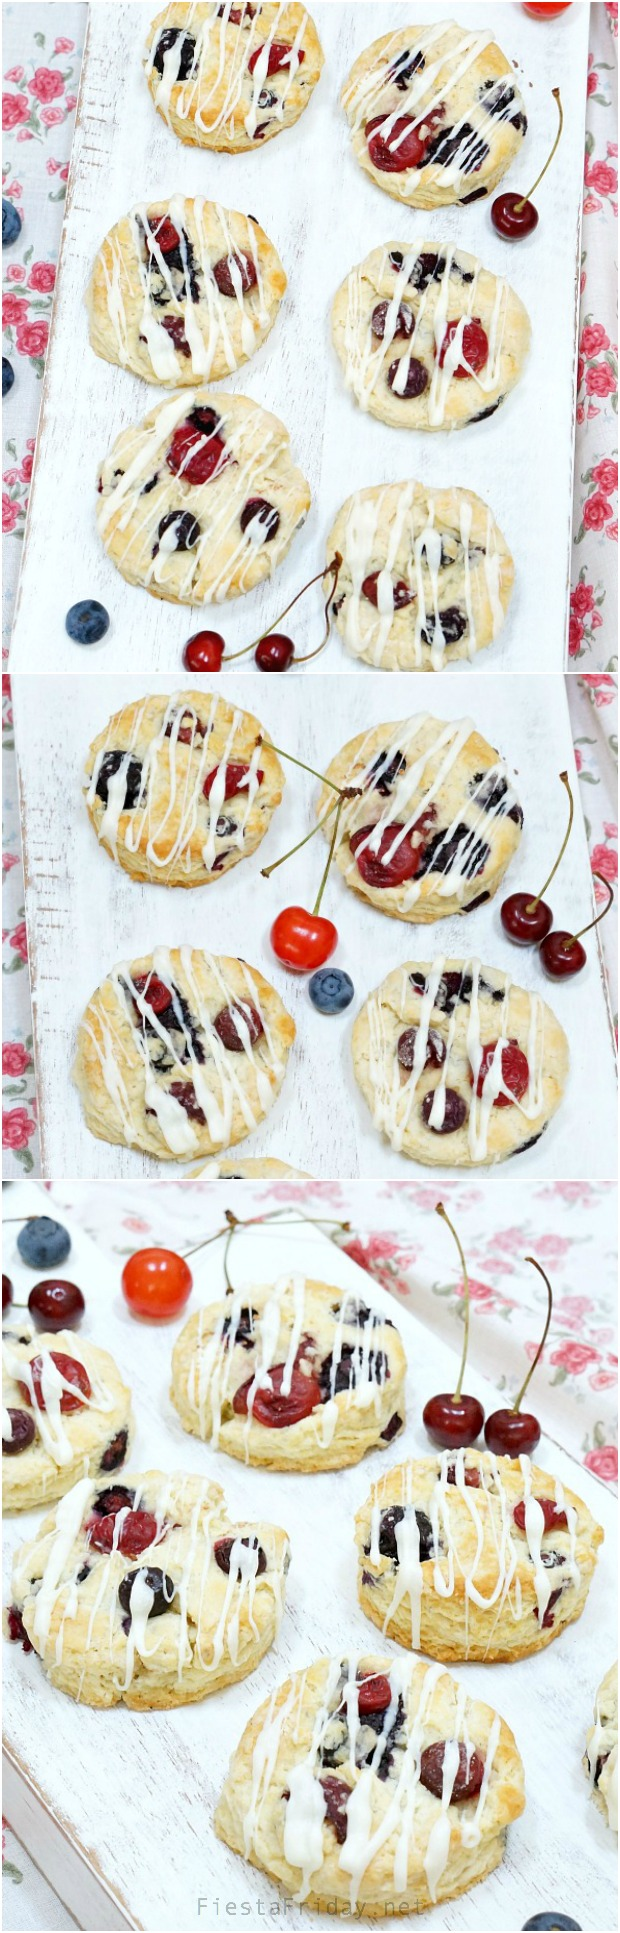 red white and blue patriotic scones | fiestafriday.net